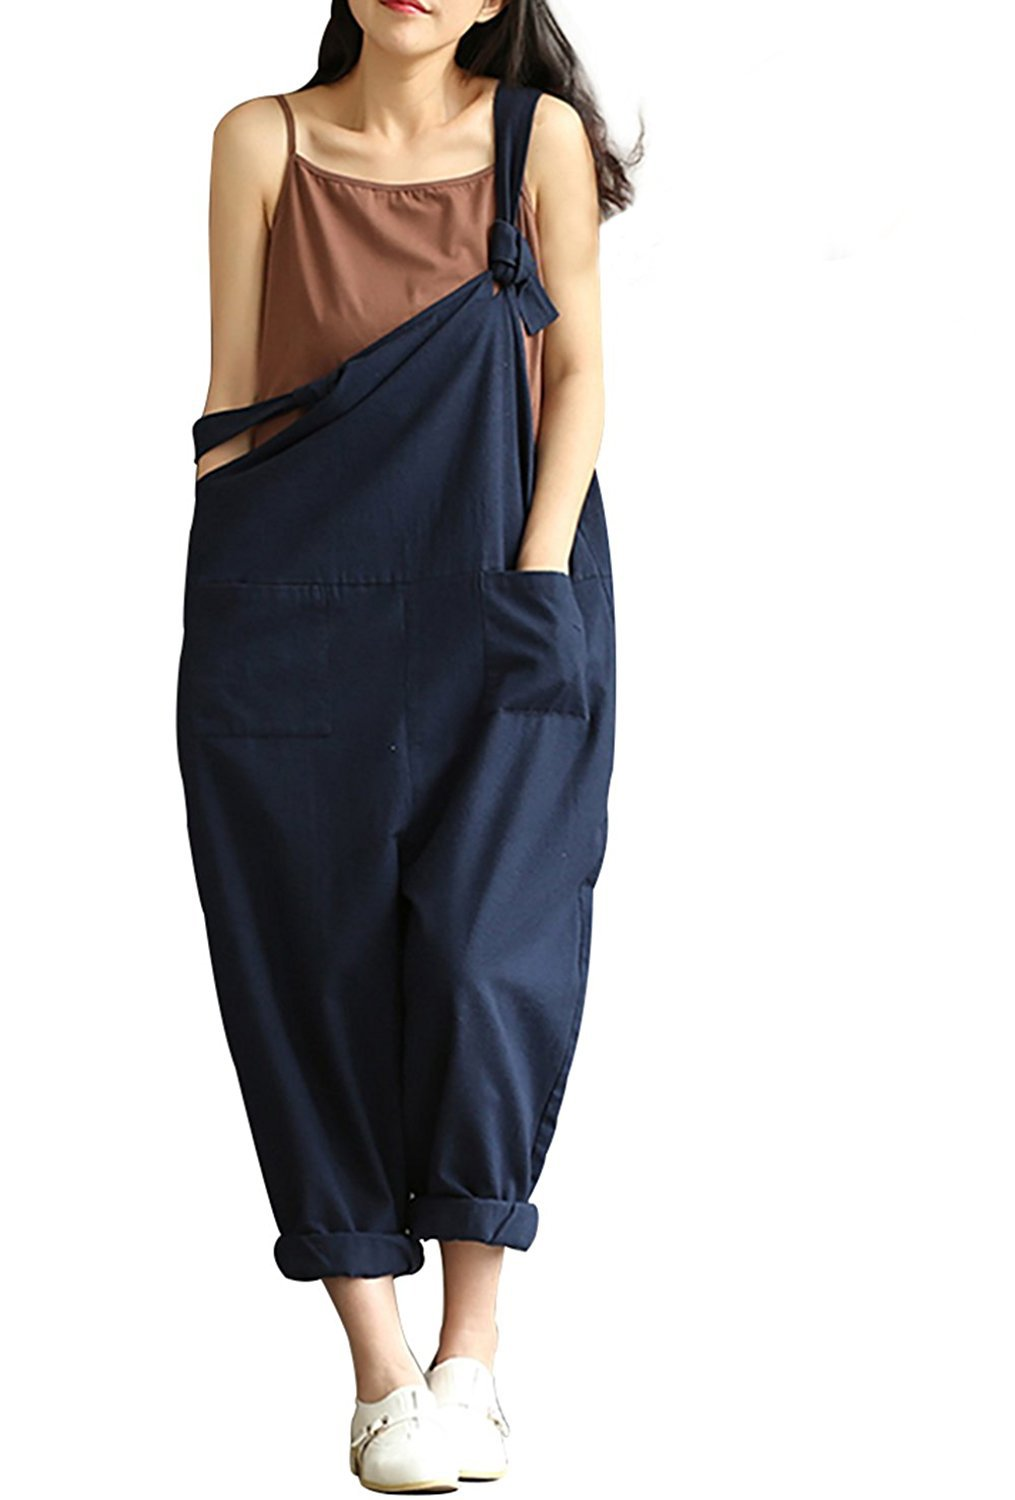 1ff4a23bf60 Aedvoouer Women s Casual Jumpsuits Overalls Baggy Bib Pants Plus Size Wide  Leg Rompers(S